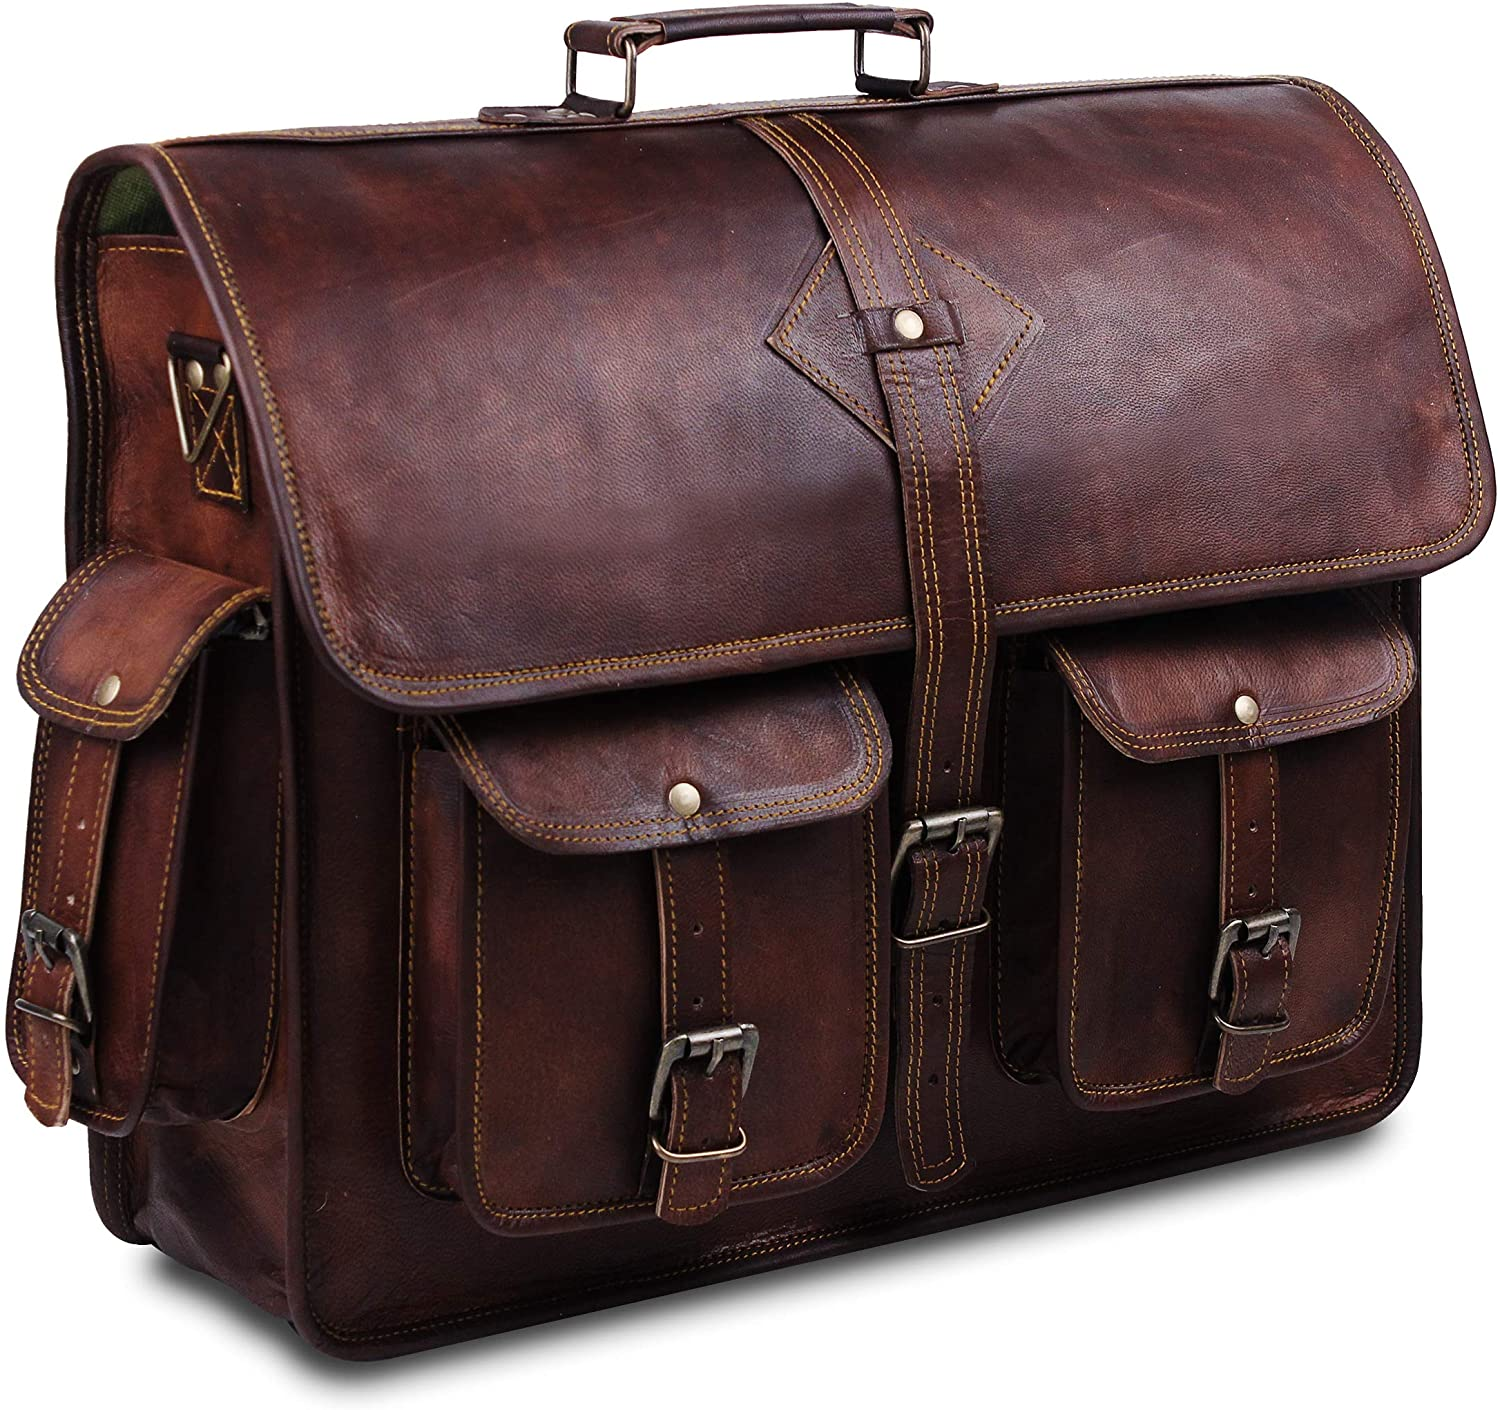 Vintage Leather Laptop Messenger Bag Briefcase Laptop Bags for Men Shoulder Leather Messenger Bag Briefcase College Bag for Weekend Travel Office Meetings